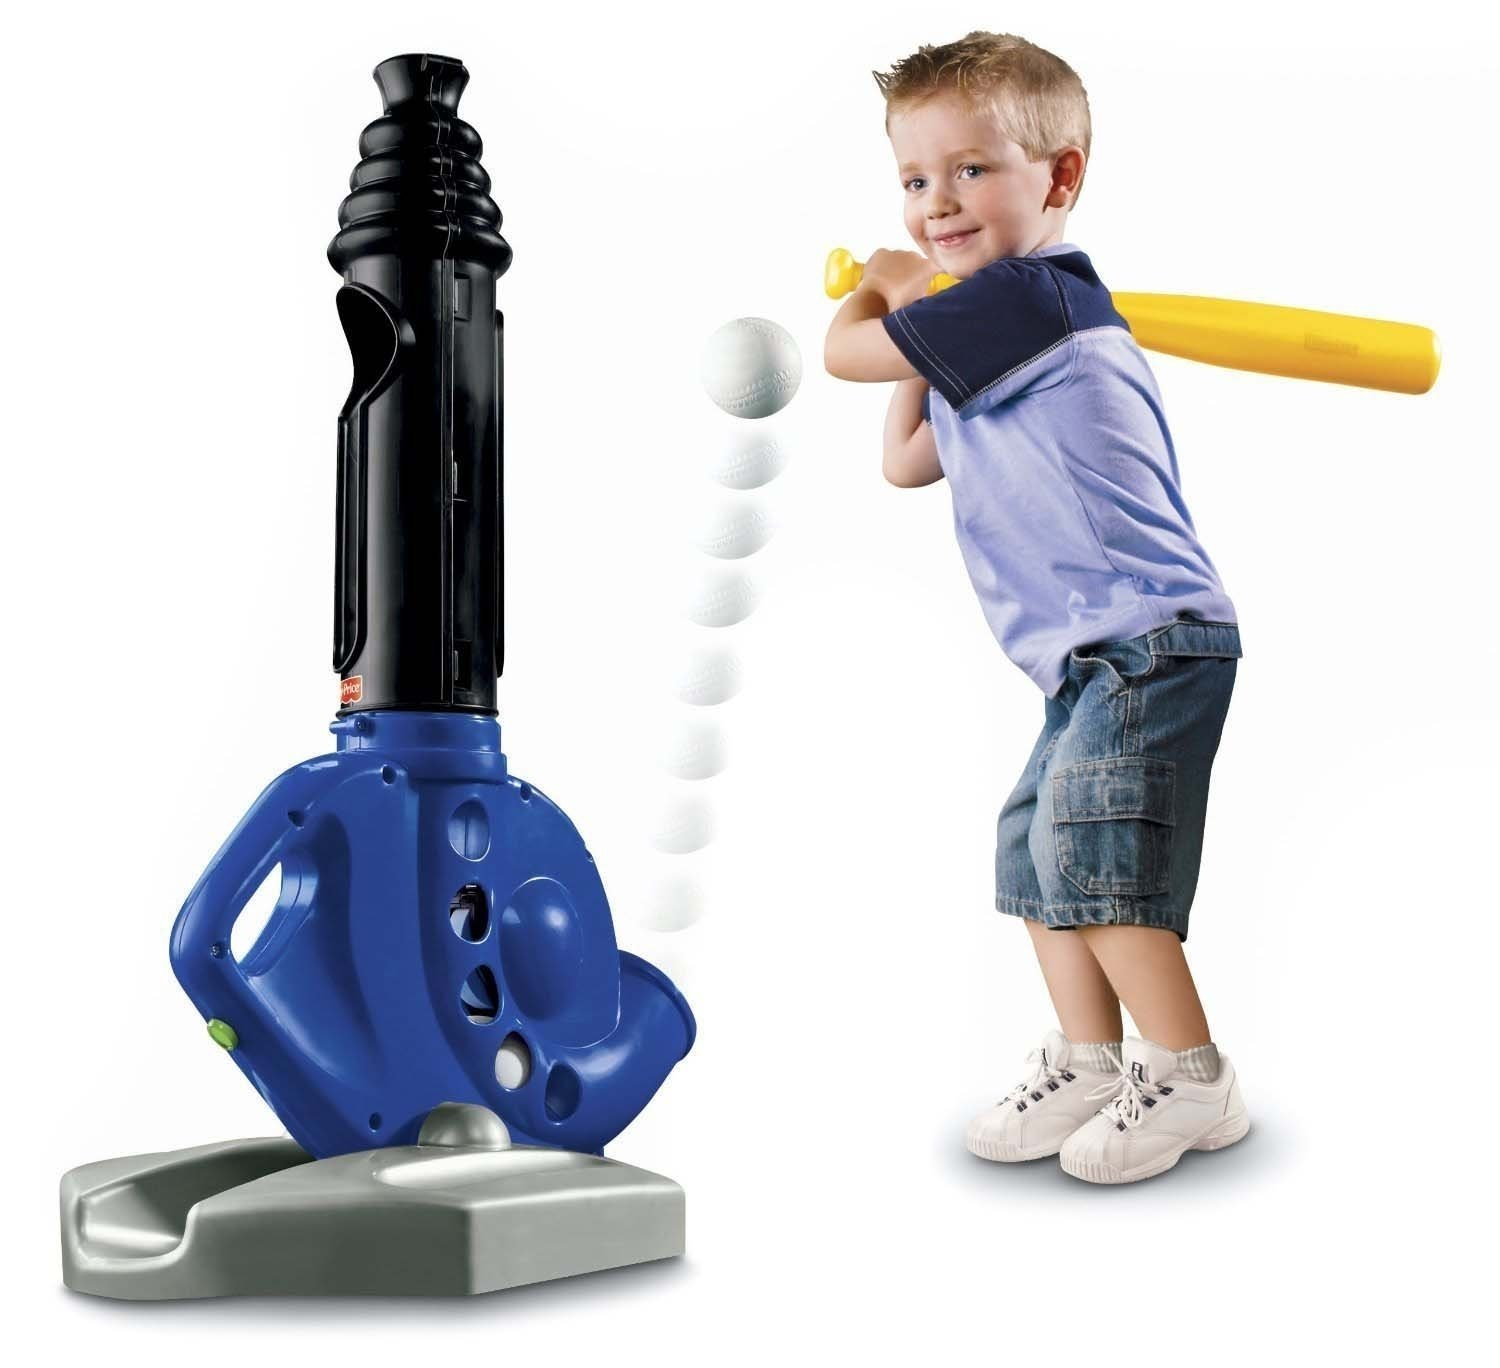 10 Unique Gift Ideas 5 Year Old Boy best toys for 4 year old boys harlemtoys harlemtoys 2021